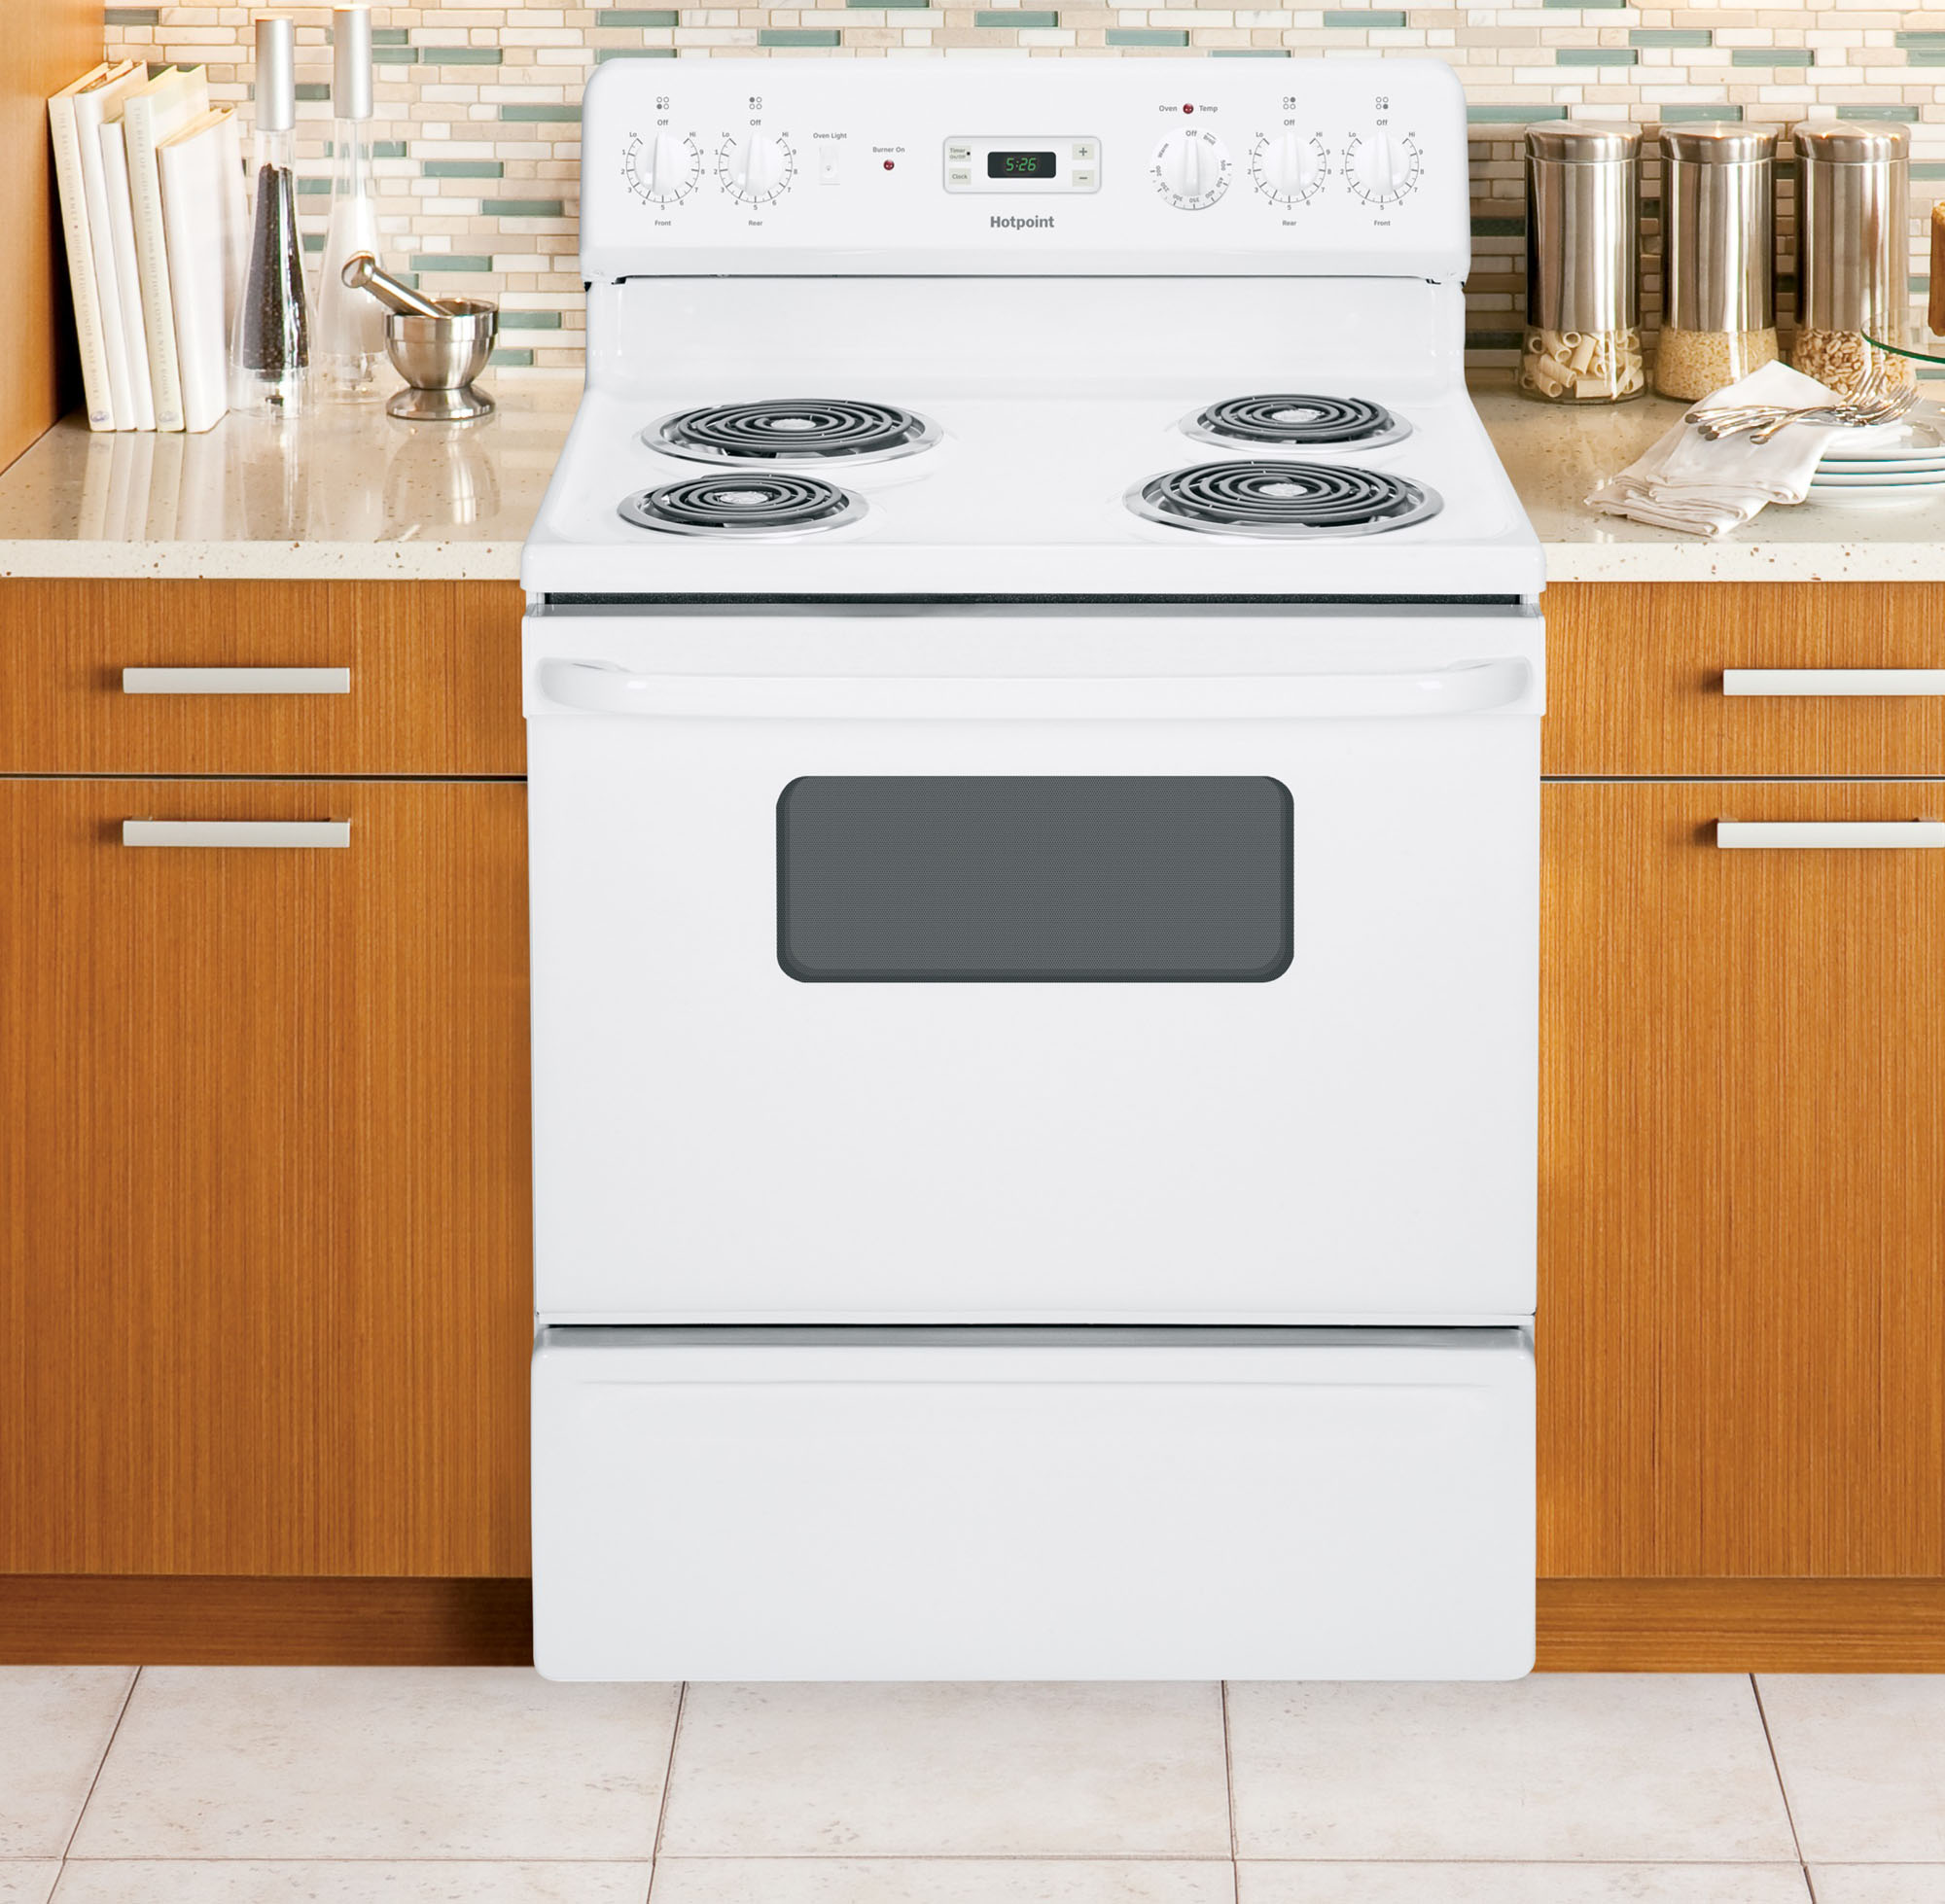 Hotpoint RB526DHWW 5.0 cu. ft. Freestanding Electric Range - White